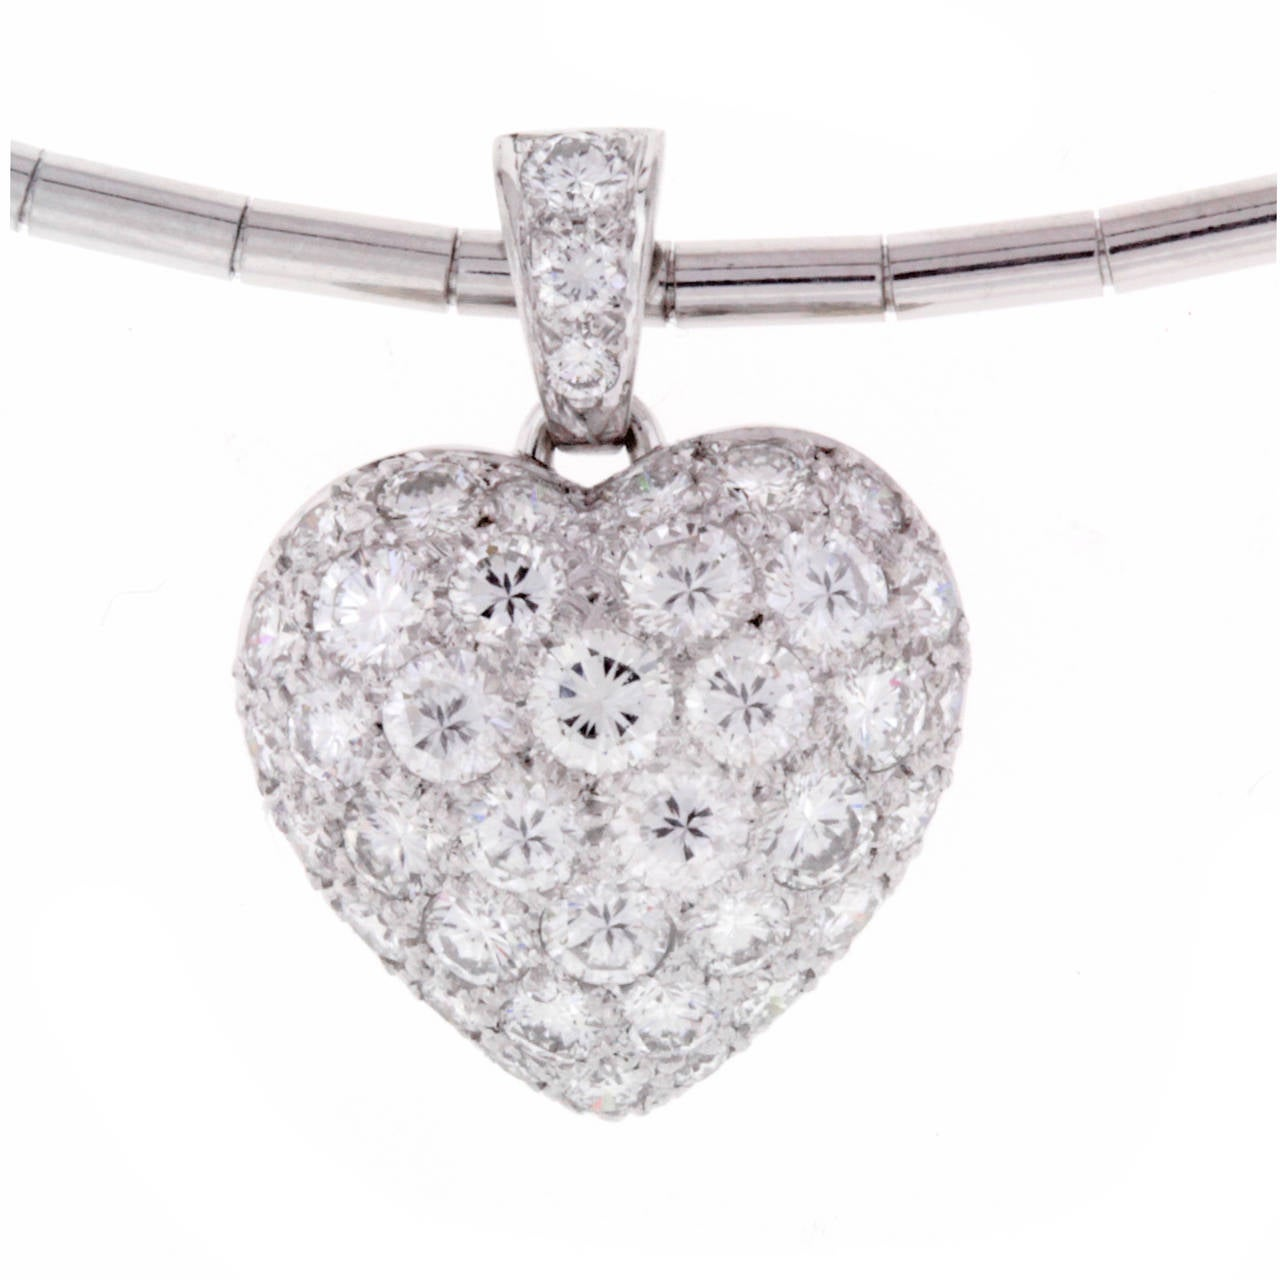 "18kt w/g Cartier diamond pave puffed heart. Set with 40 brilliant cut diamonds weighing 2.00 carats with Cartier 16"" collar necklace."